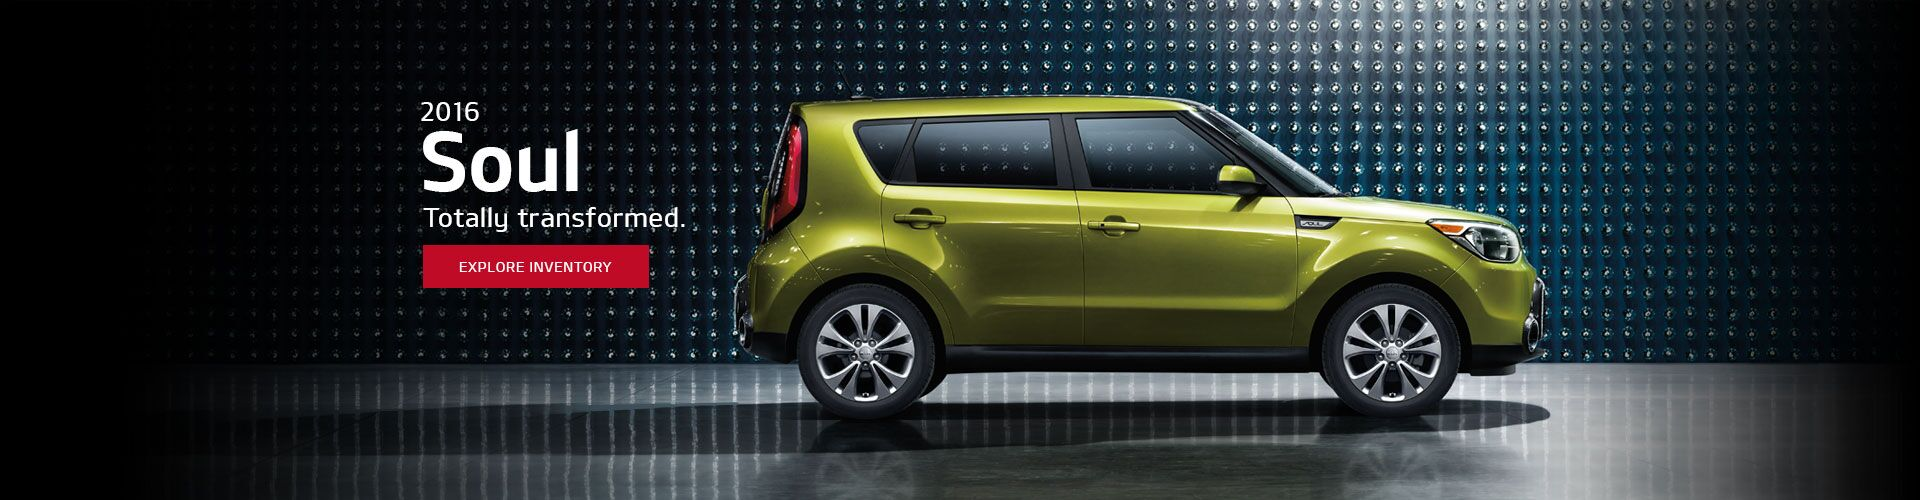 New Kia Soul at Paramount Kia of Asheville